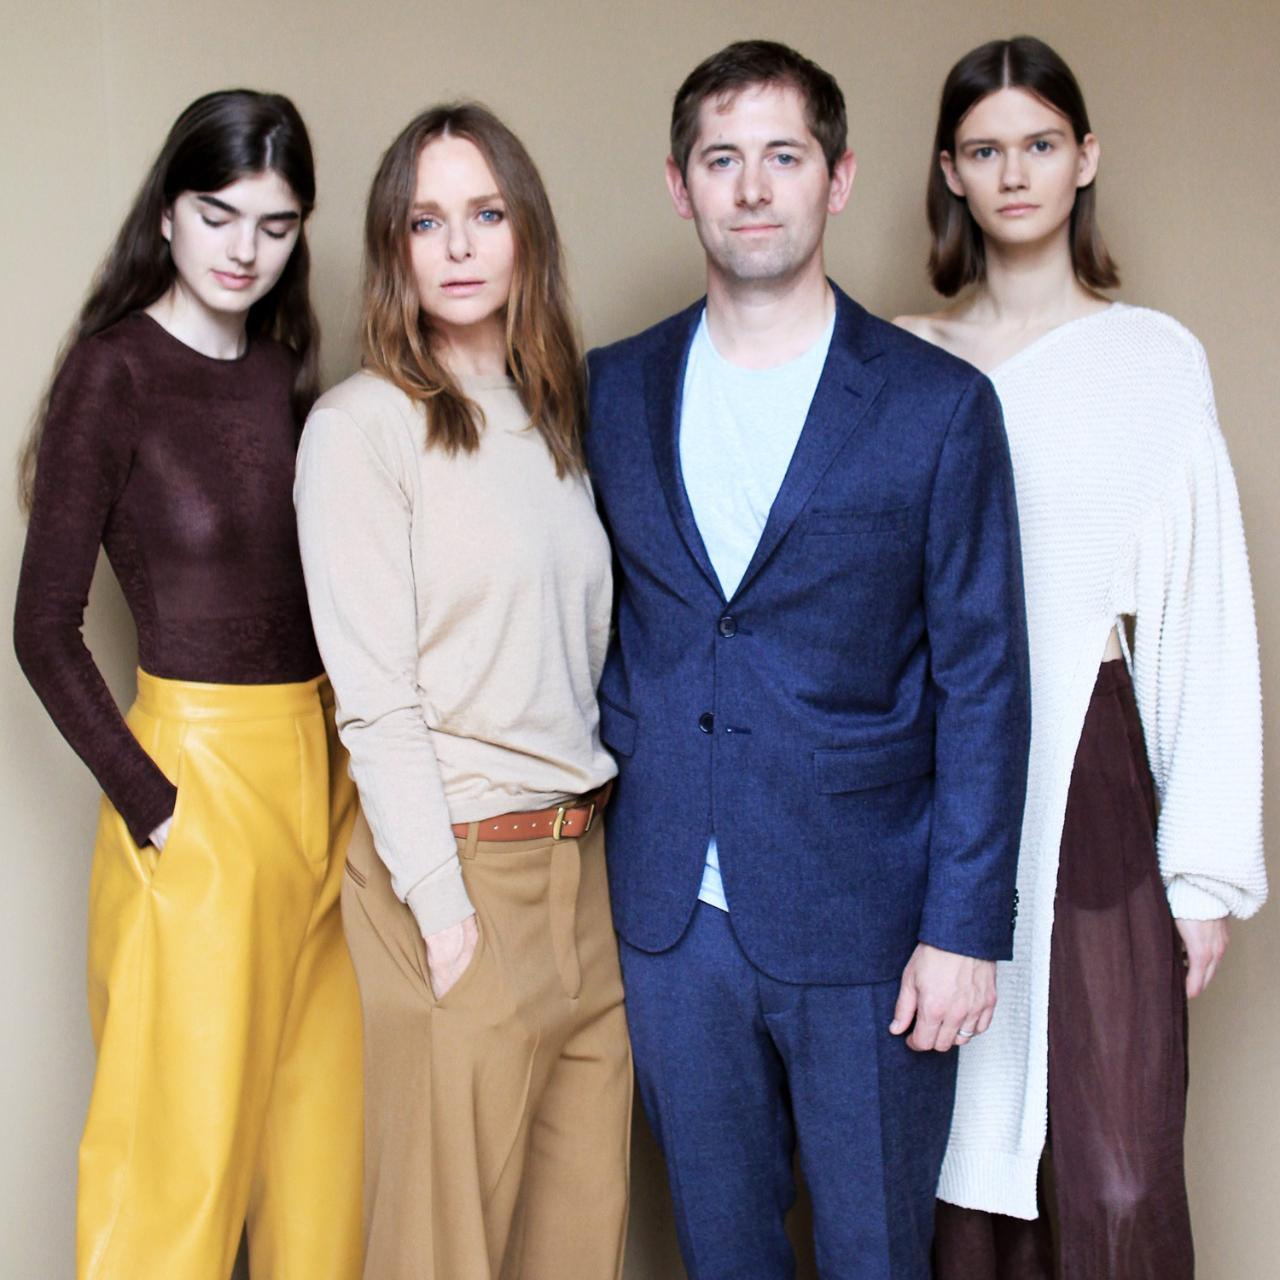 Fashion designer Stella McCartney (second from left) partnered with Bolt Threads CEO Dan Widmaier (second from right) to create clothing made from Microsilk.